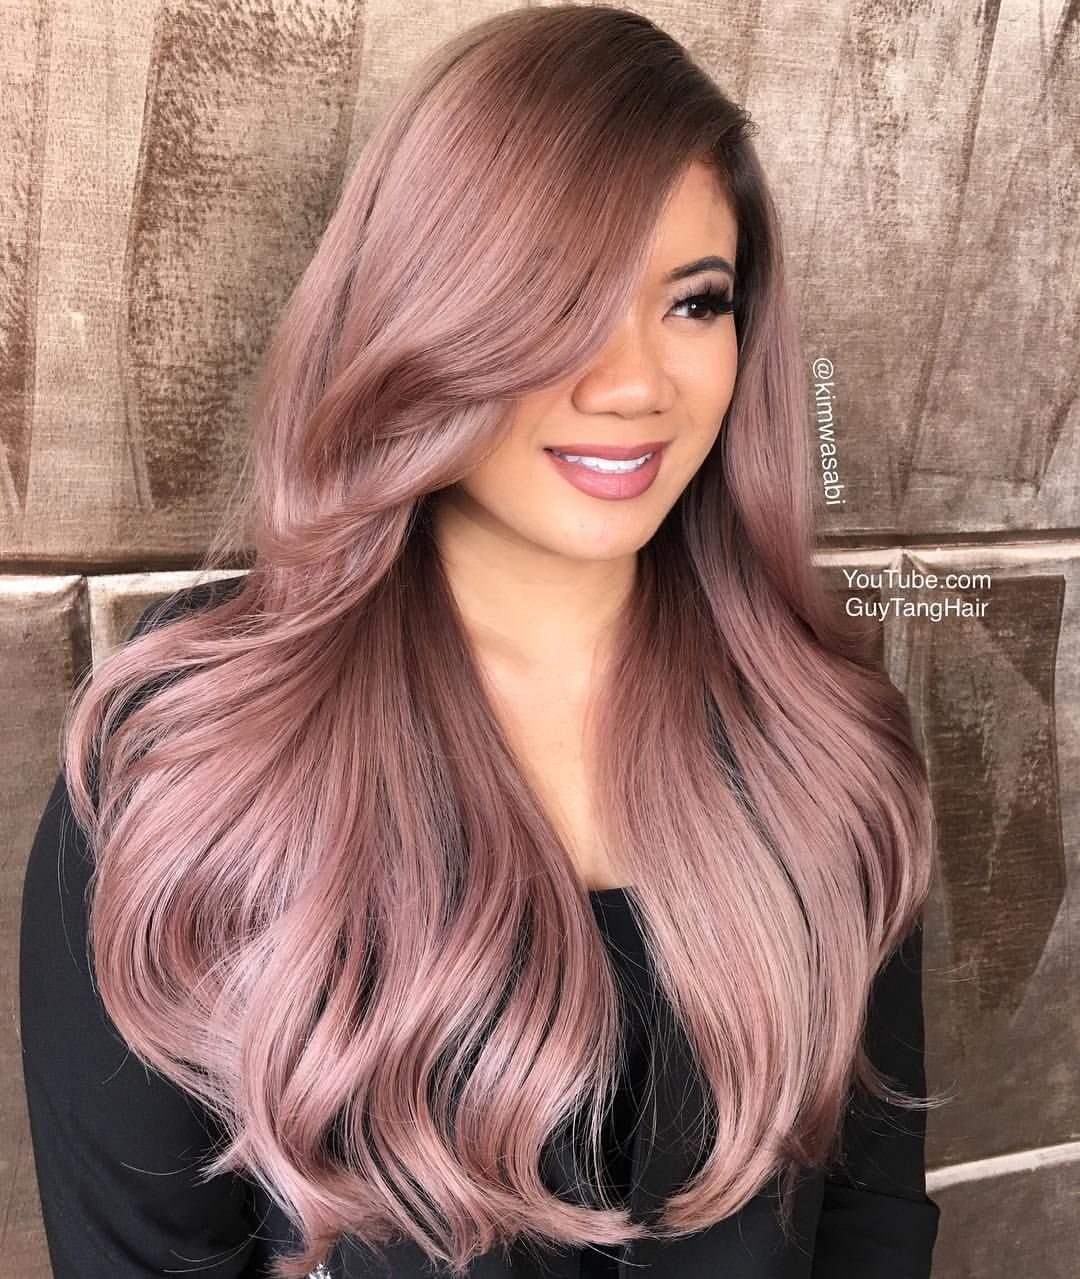 See This Instagram Photo By Hairbesties 444 Likes Hair Pinterest Coloring And Style